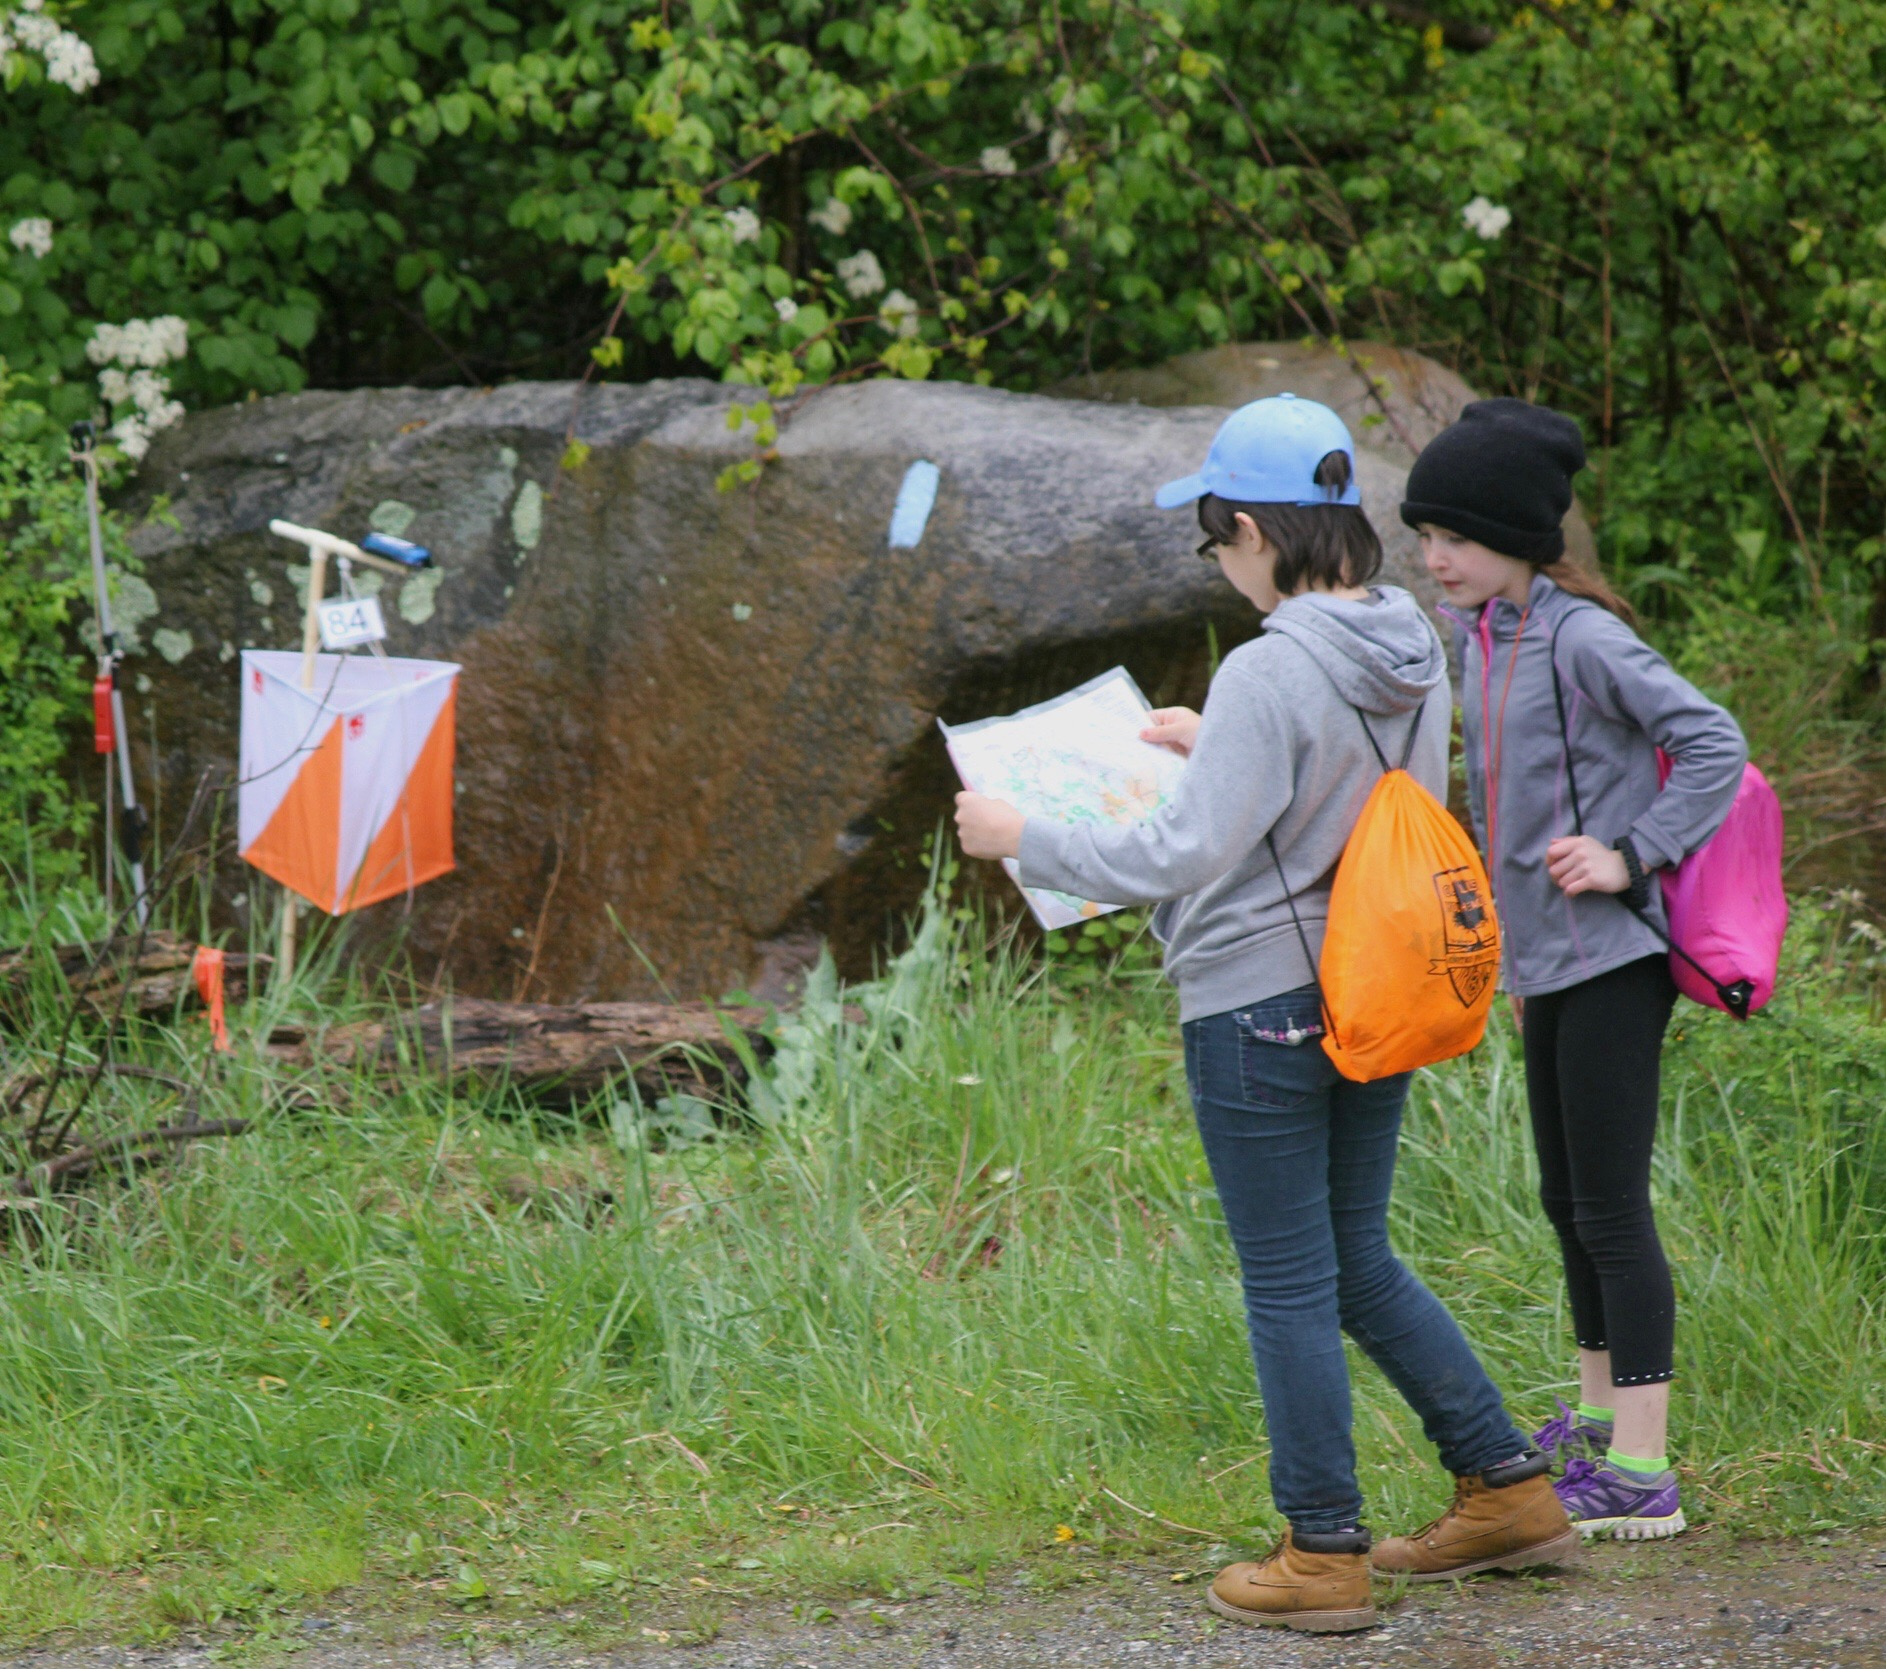 Orienteering class for beginners to be held at Governor Dick this month